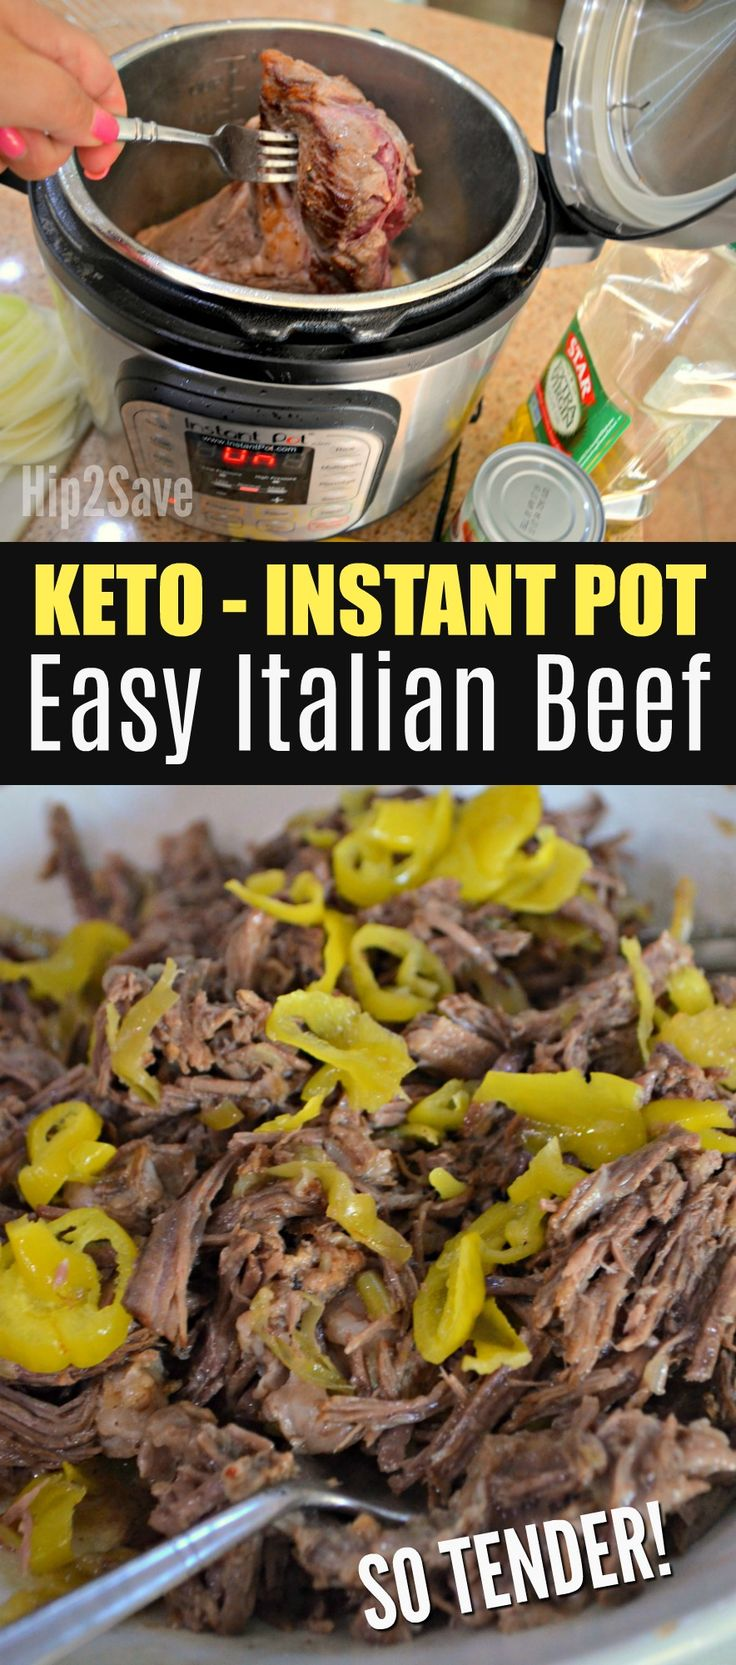 You've gotta try this flavorful roast using Peperoncino peppers and Italian seasonings for an easy Keto and Low Carb meal idea the entire family will LOVE!